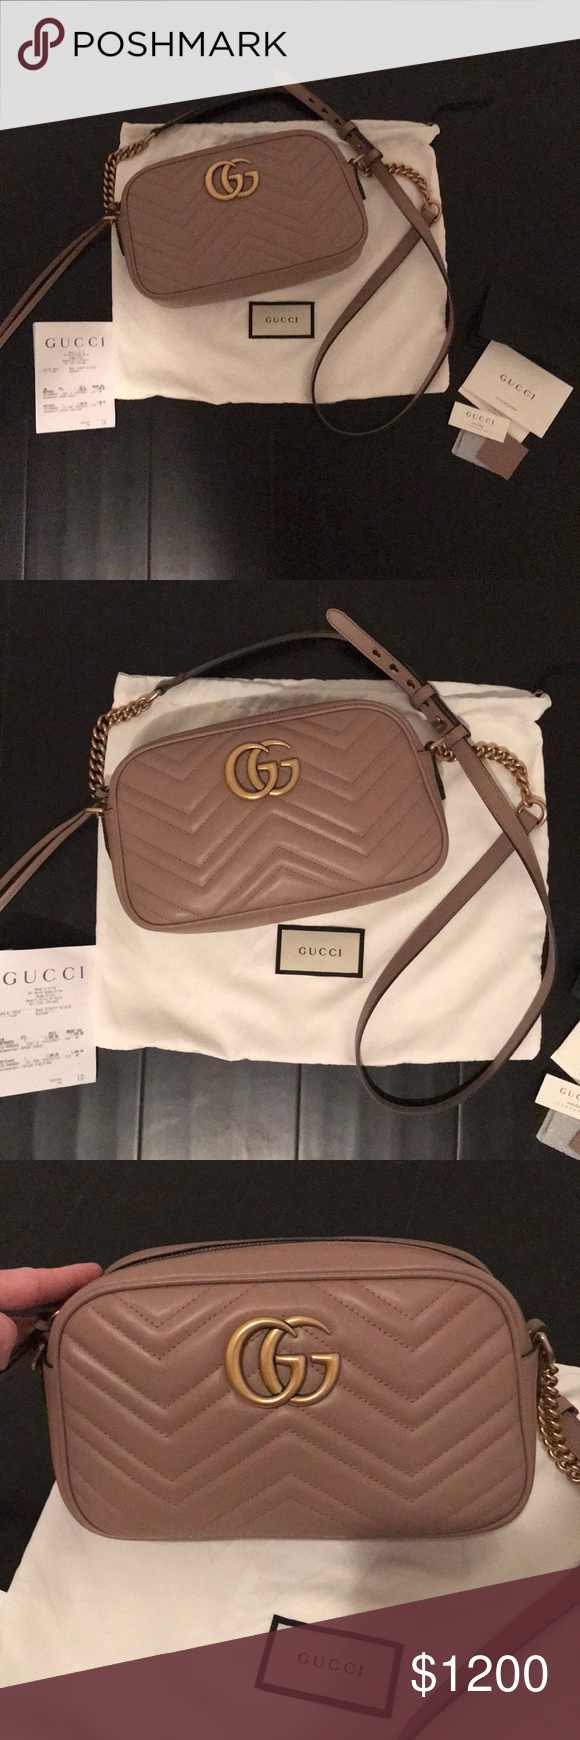 c1fea6bc8d5b31 Gucci NEW GG Marmont small matelassé shoulder bag The small GG Marmont  chain shoulder bag has